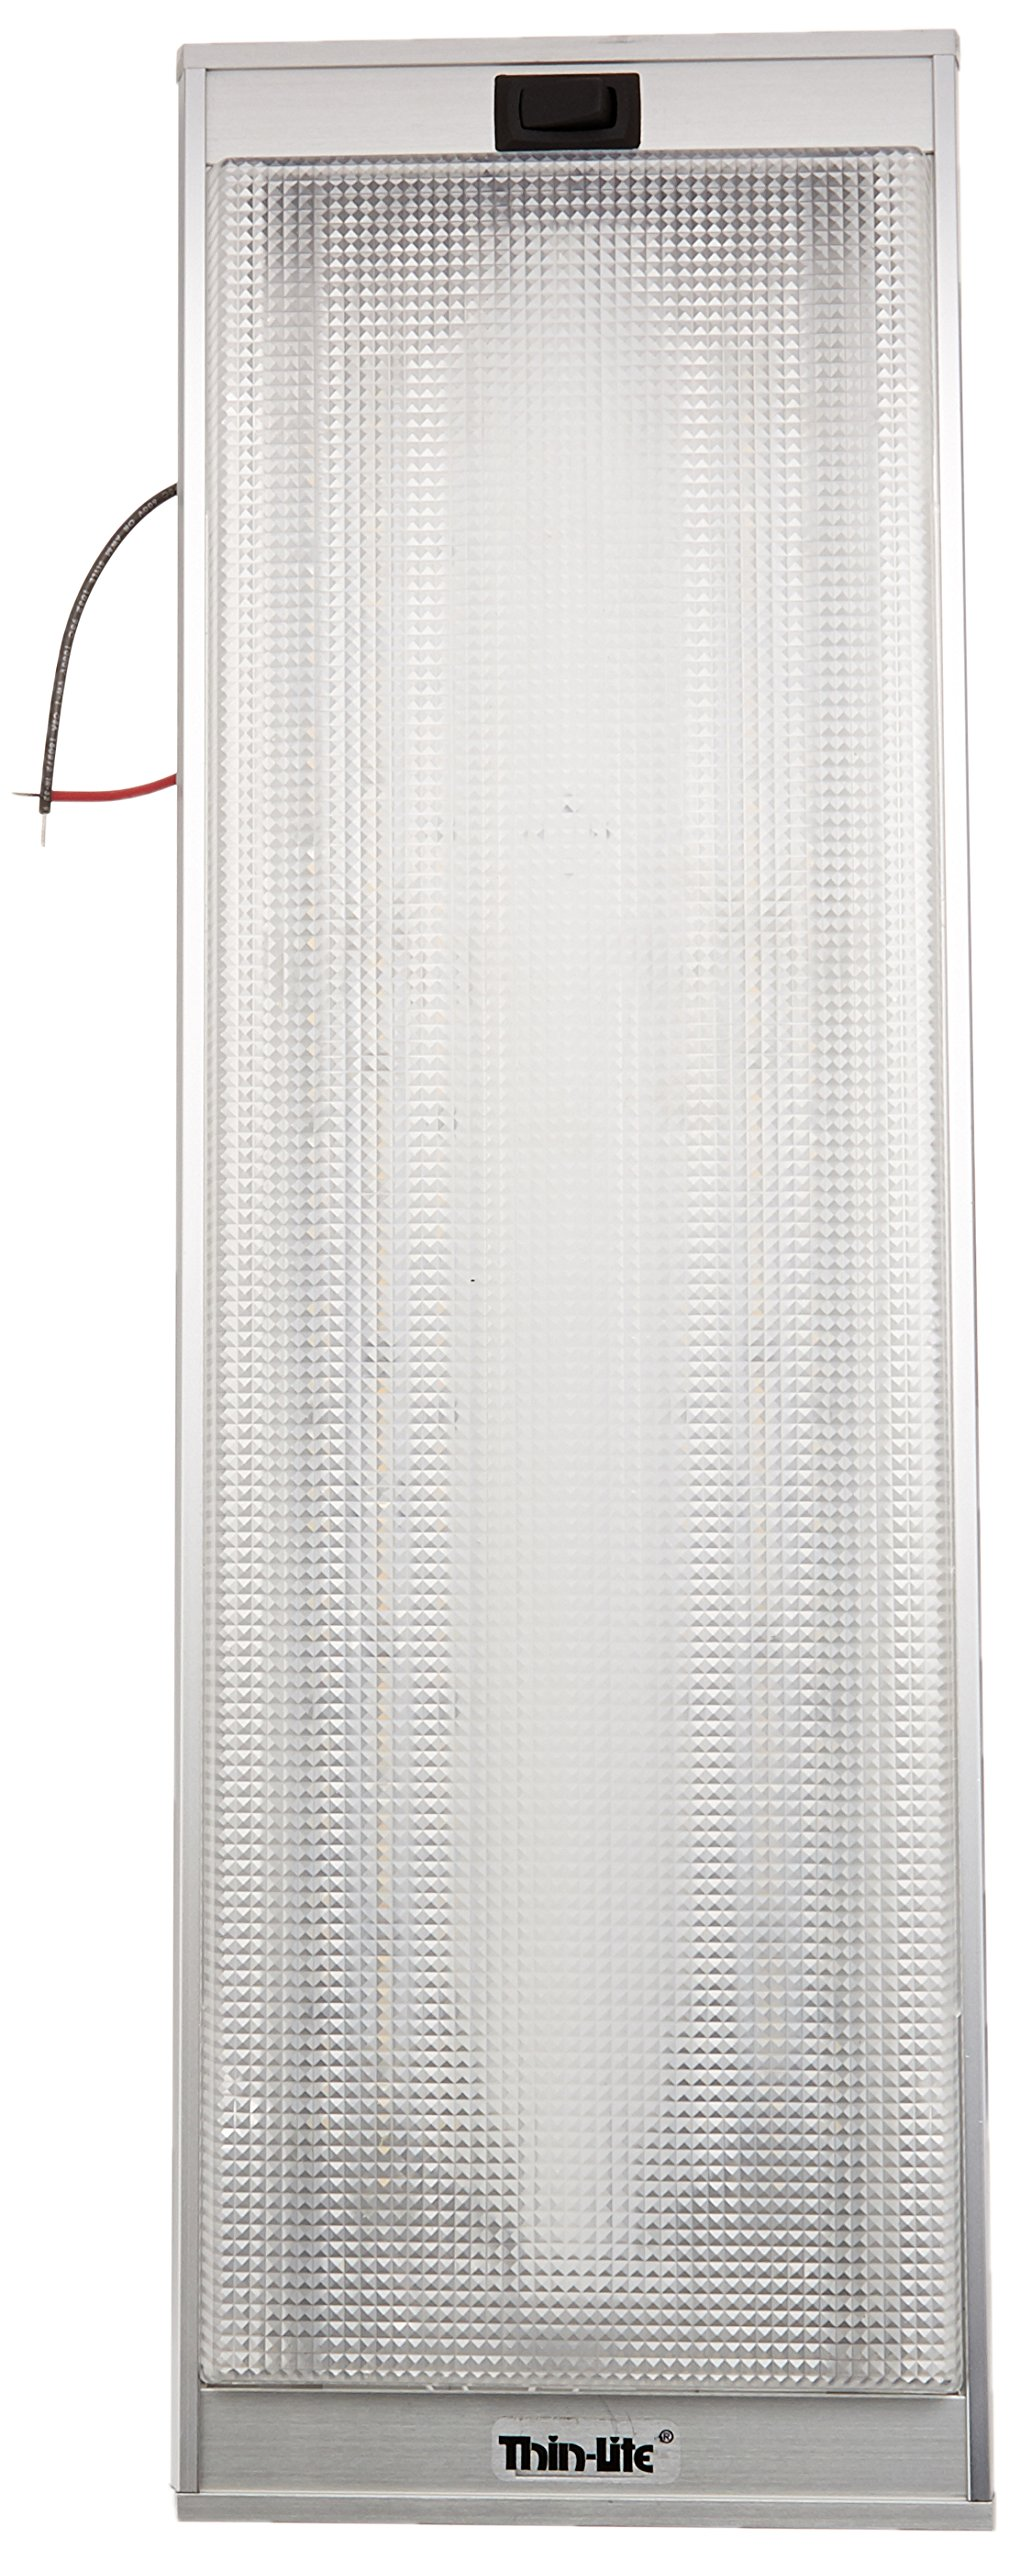 Thin-Lite Corp LED716XLP #716Xlp 72 Led 15Watt by Thin-Lite